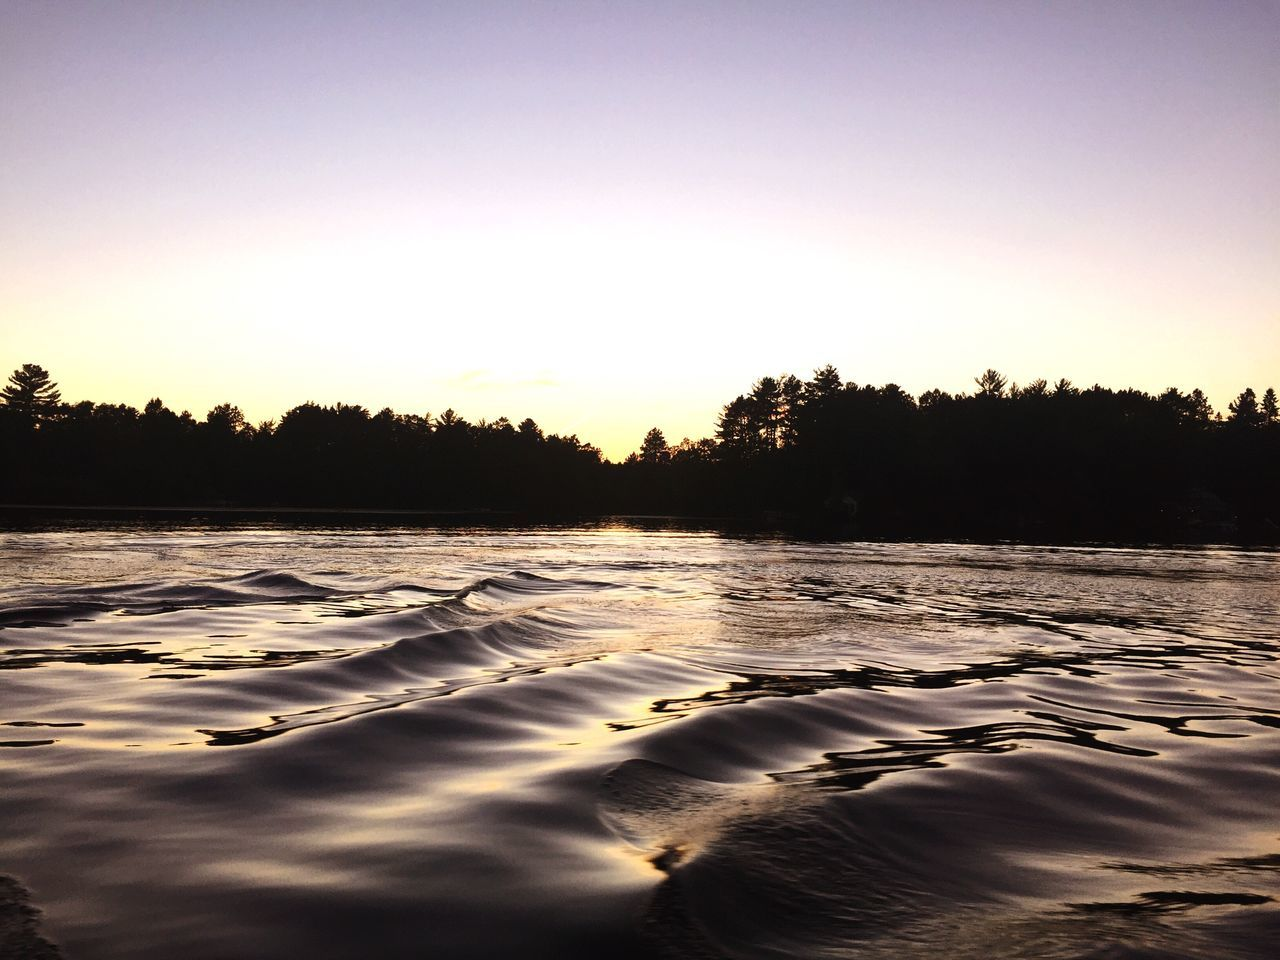 Waves Pattern Smooth Water Trees Background Lake River